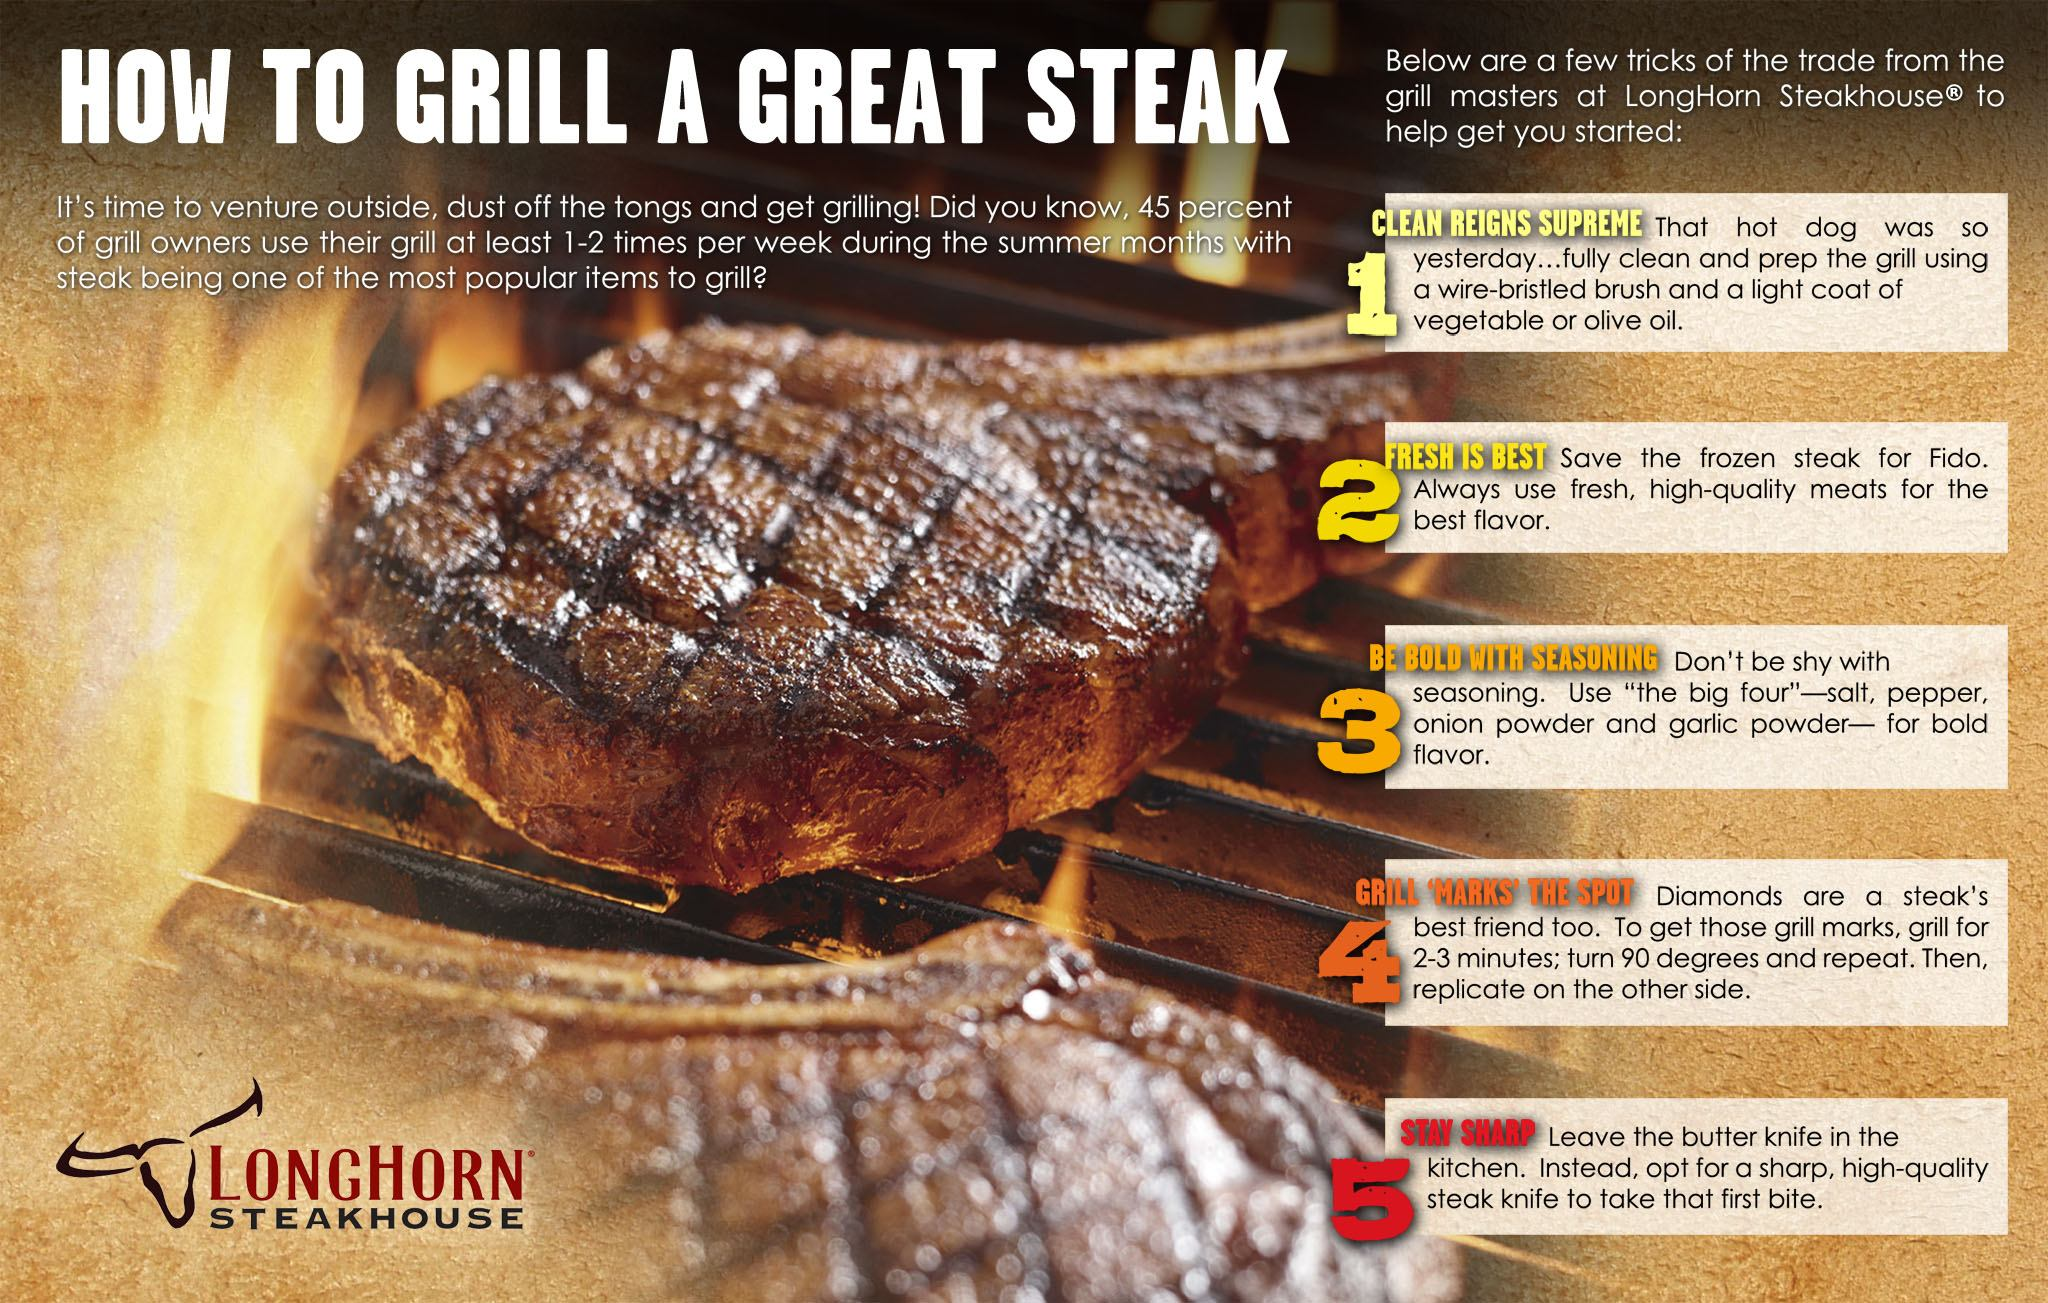 Longhorn Steakhouse: 4th of July Grilling Tip and a Giveaway!